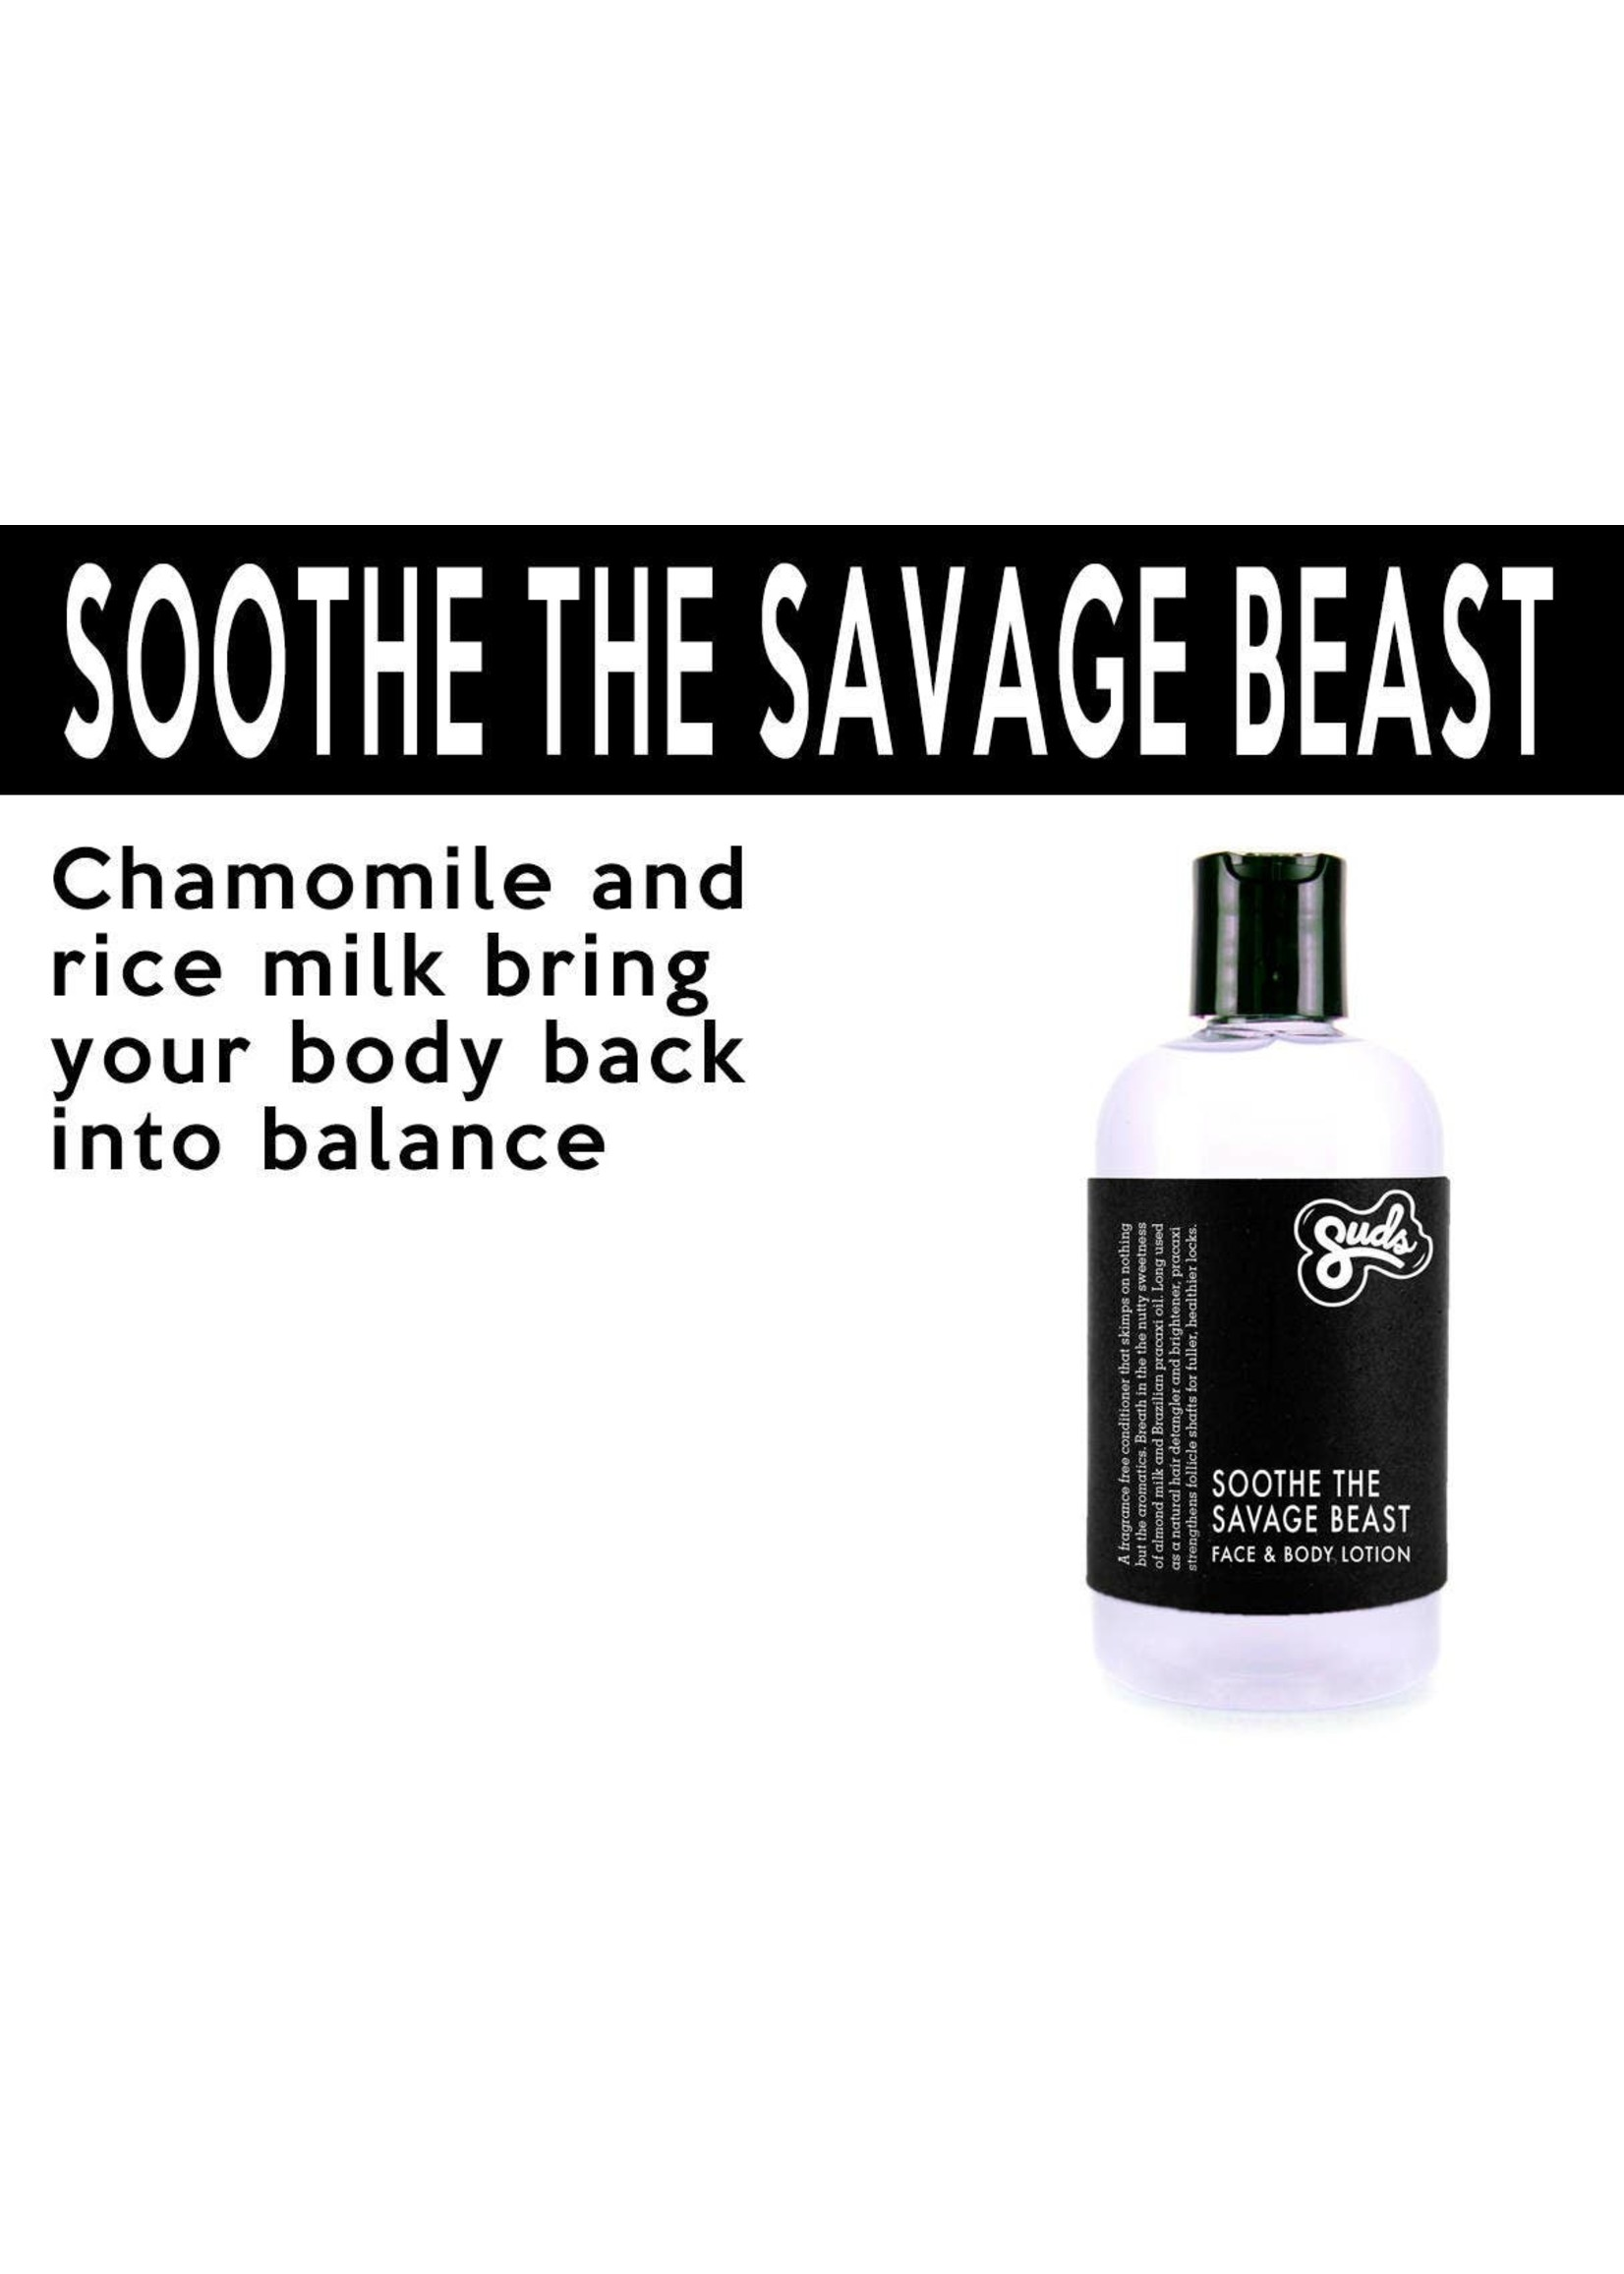 Sudsatorium Soothe the Savage Beast Face and Body Lotion - 250ml